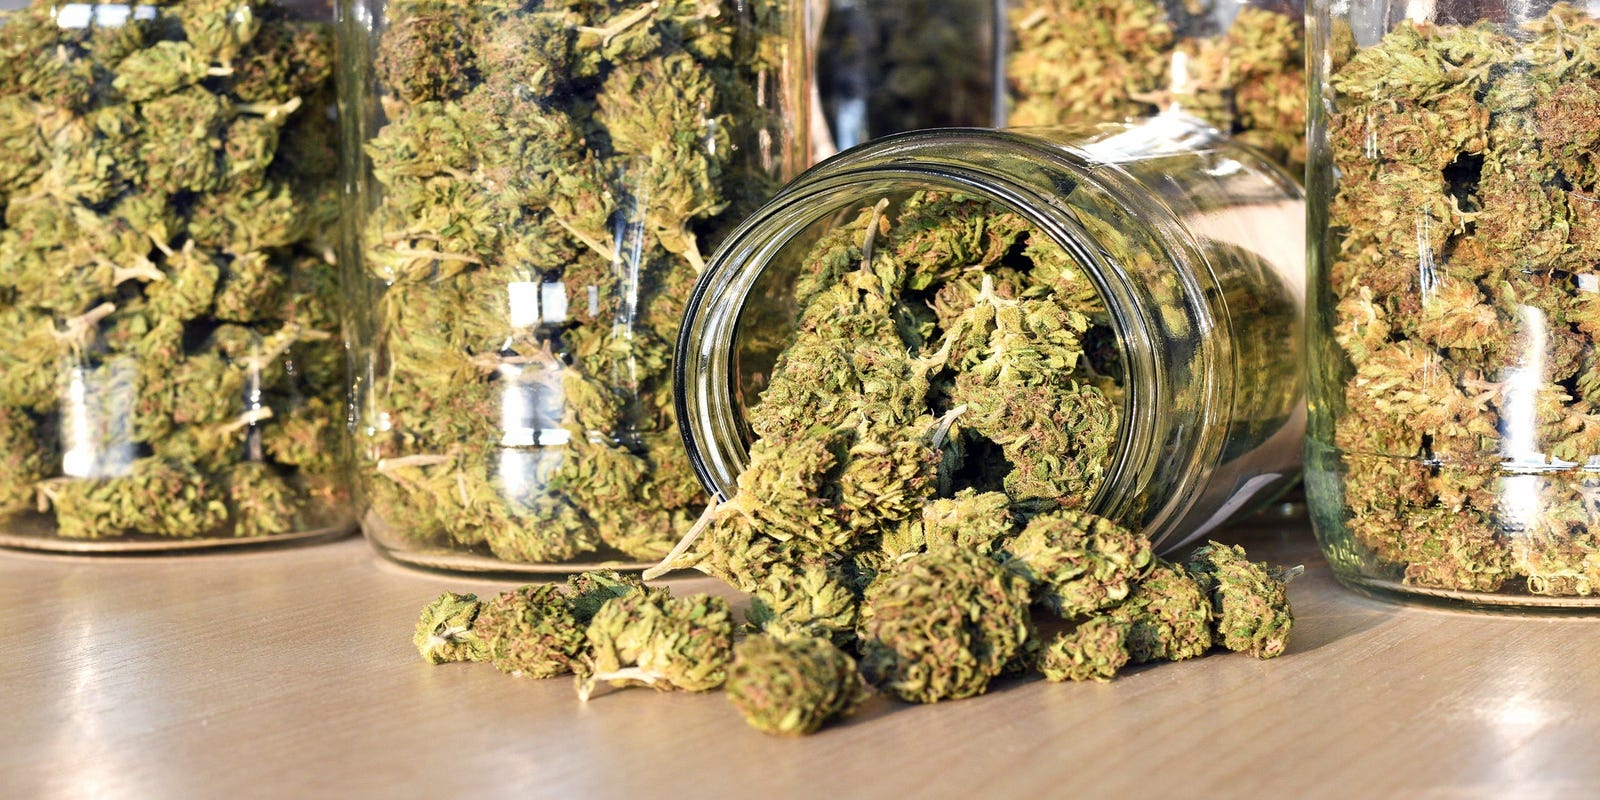 With weed legalization in neighboring states, Wisconsin employers are rethinking marijuana policies